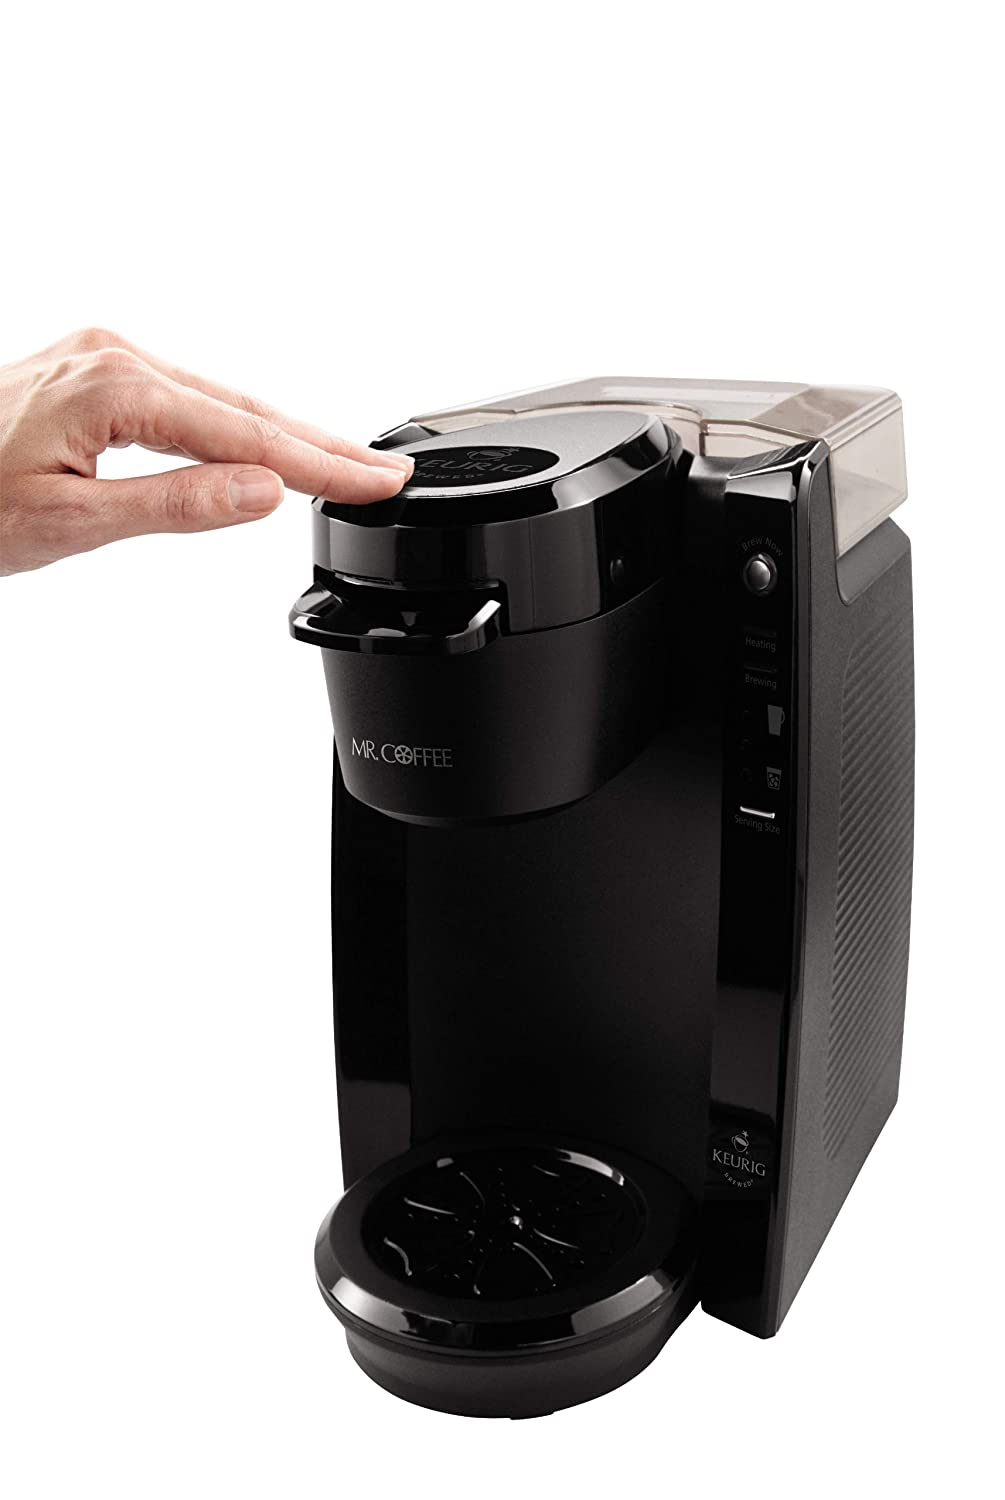 Mr. Coffee BVMC-KG5-001 Single Serve Coffee Brewer Powered ...